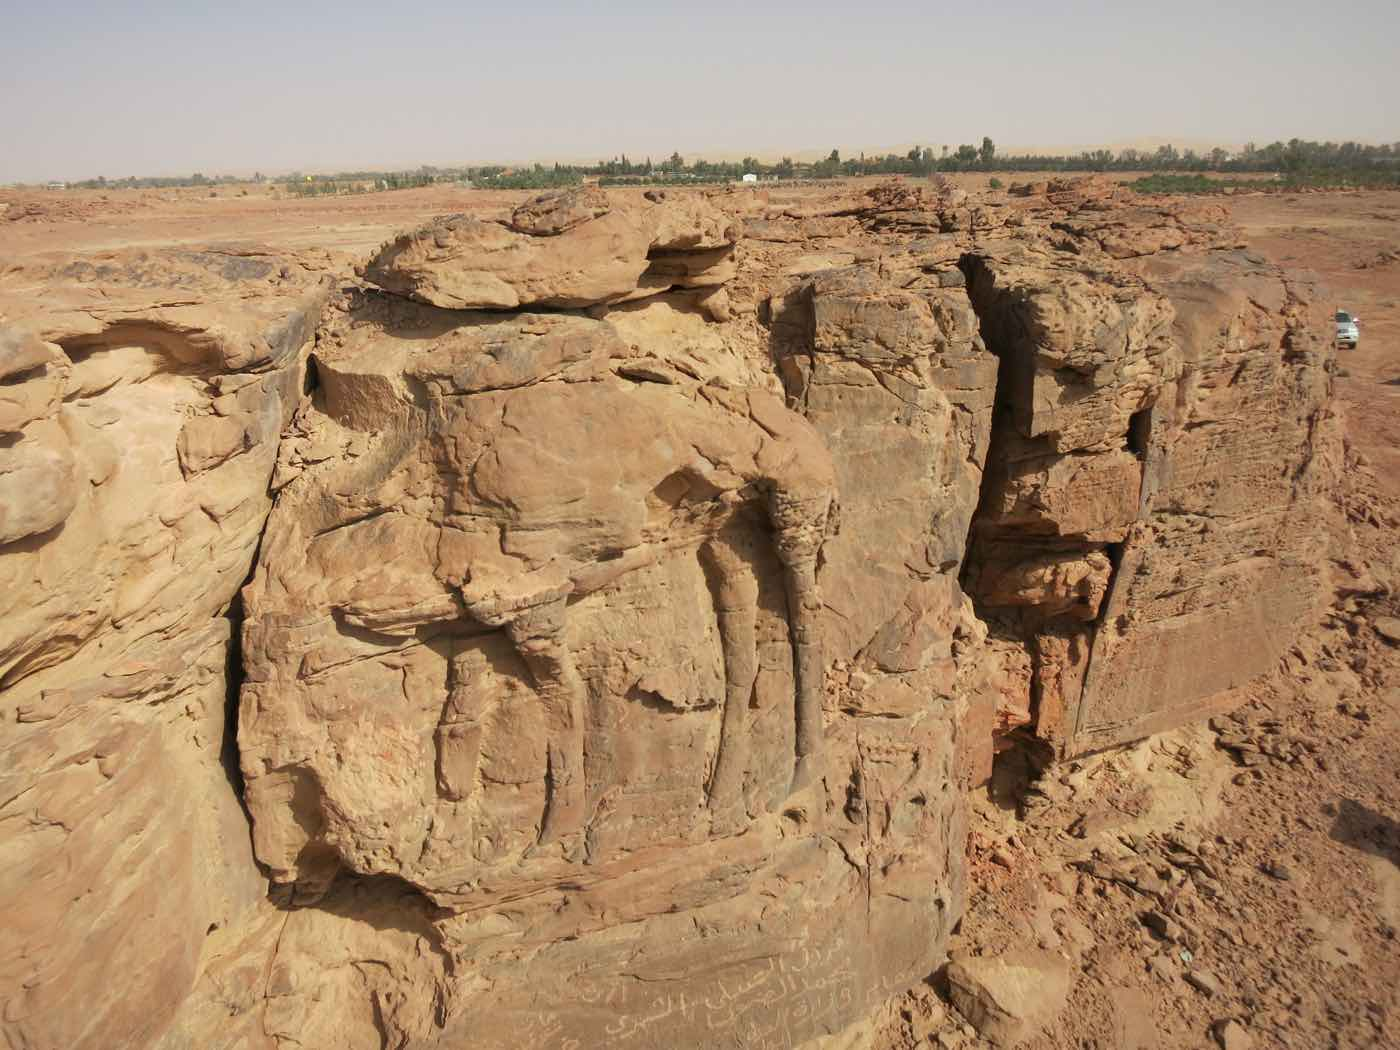 Ancient Rock Carving found in remote Saudi Arabia